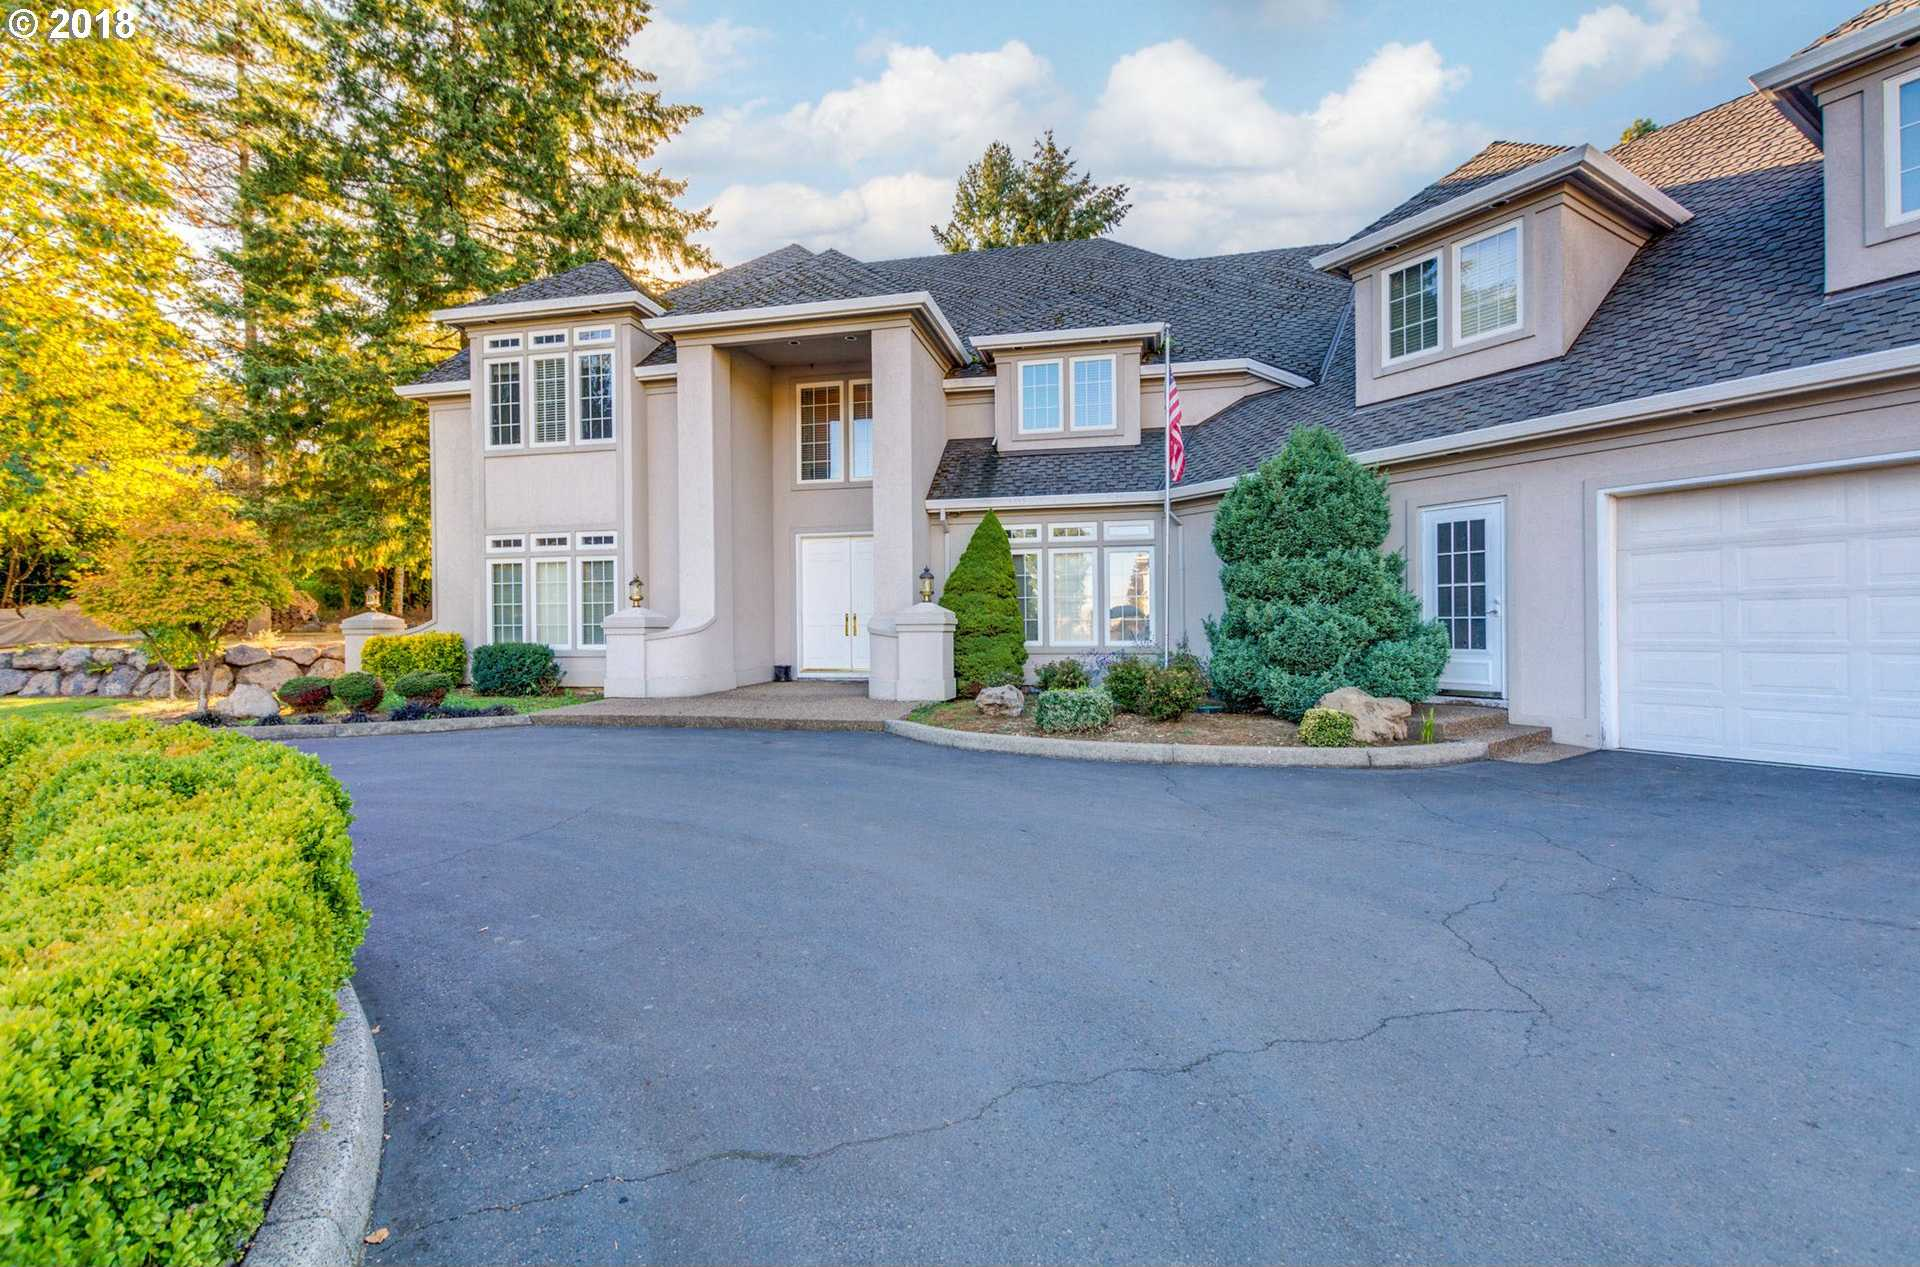 $875,000 - 6Br/5Ba -  for Sale in Tigard, Tigard